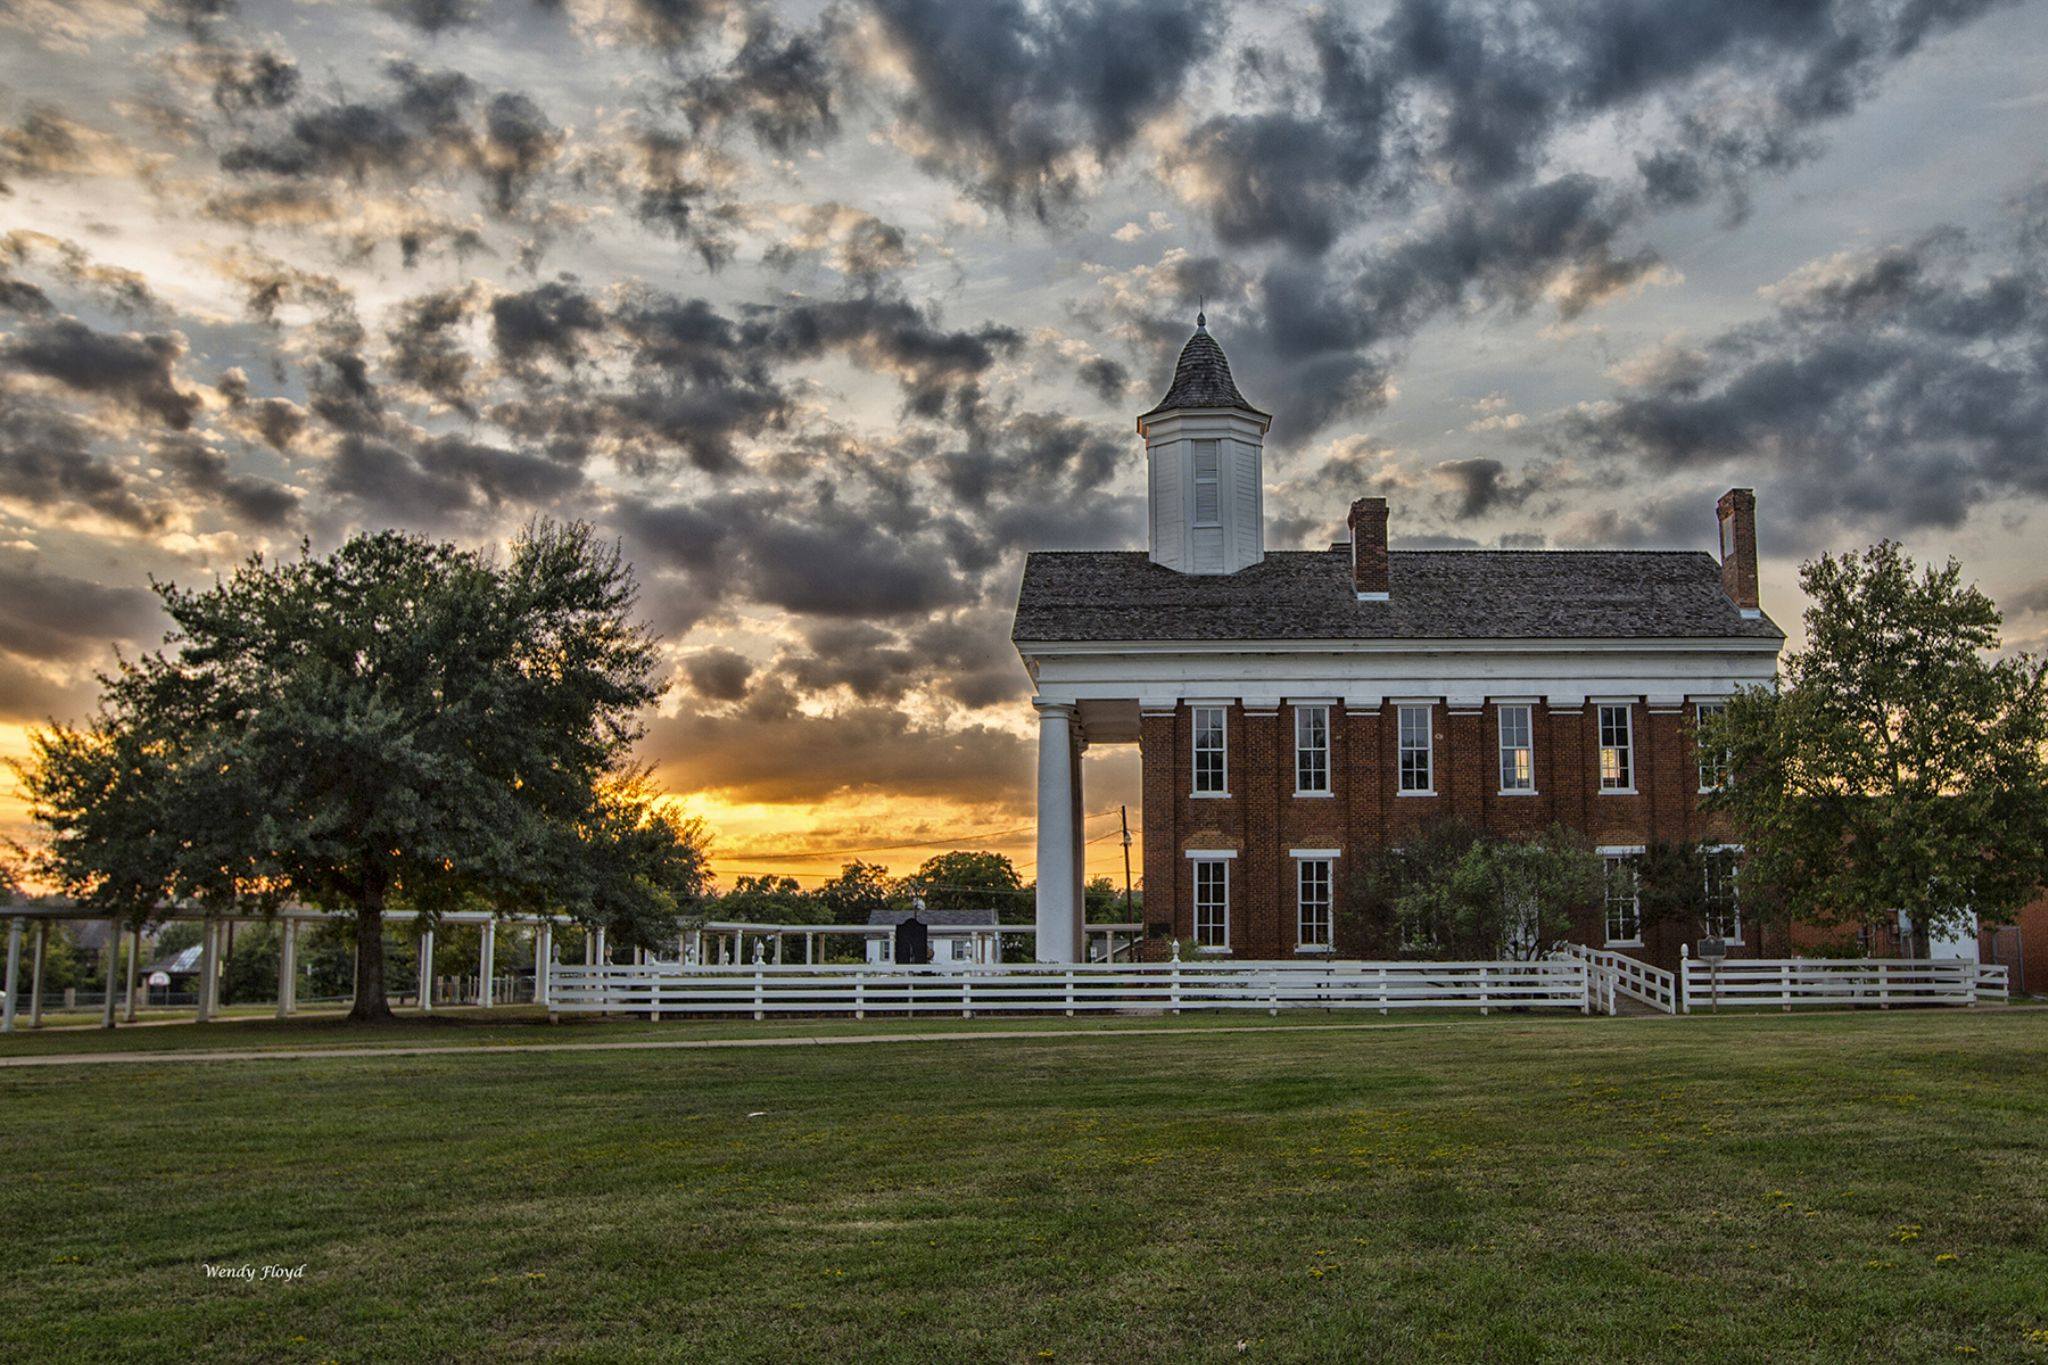 Old University Building at Sunset by WendyFloyd1